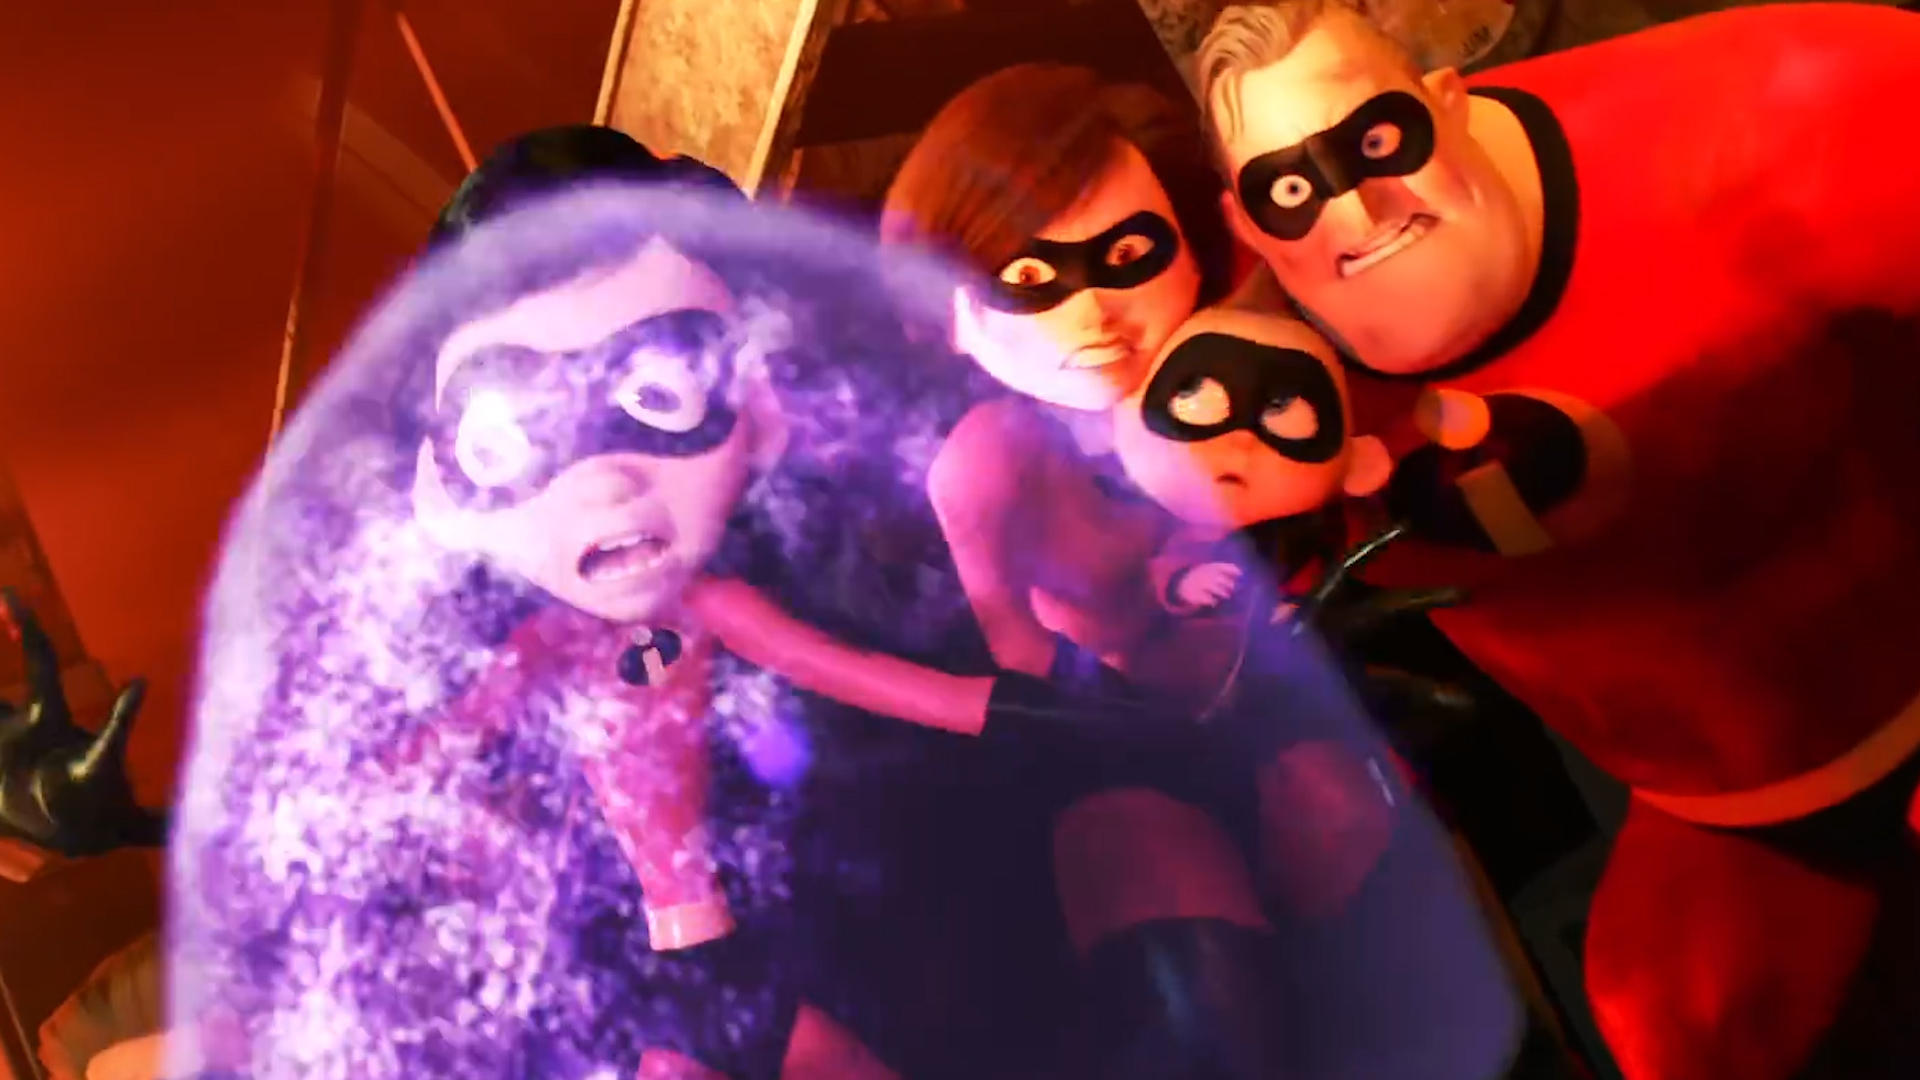 The Incredibles 2 (June 15)